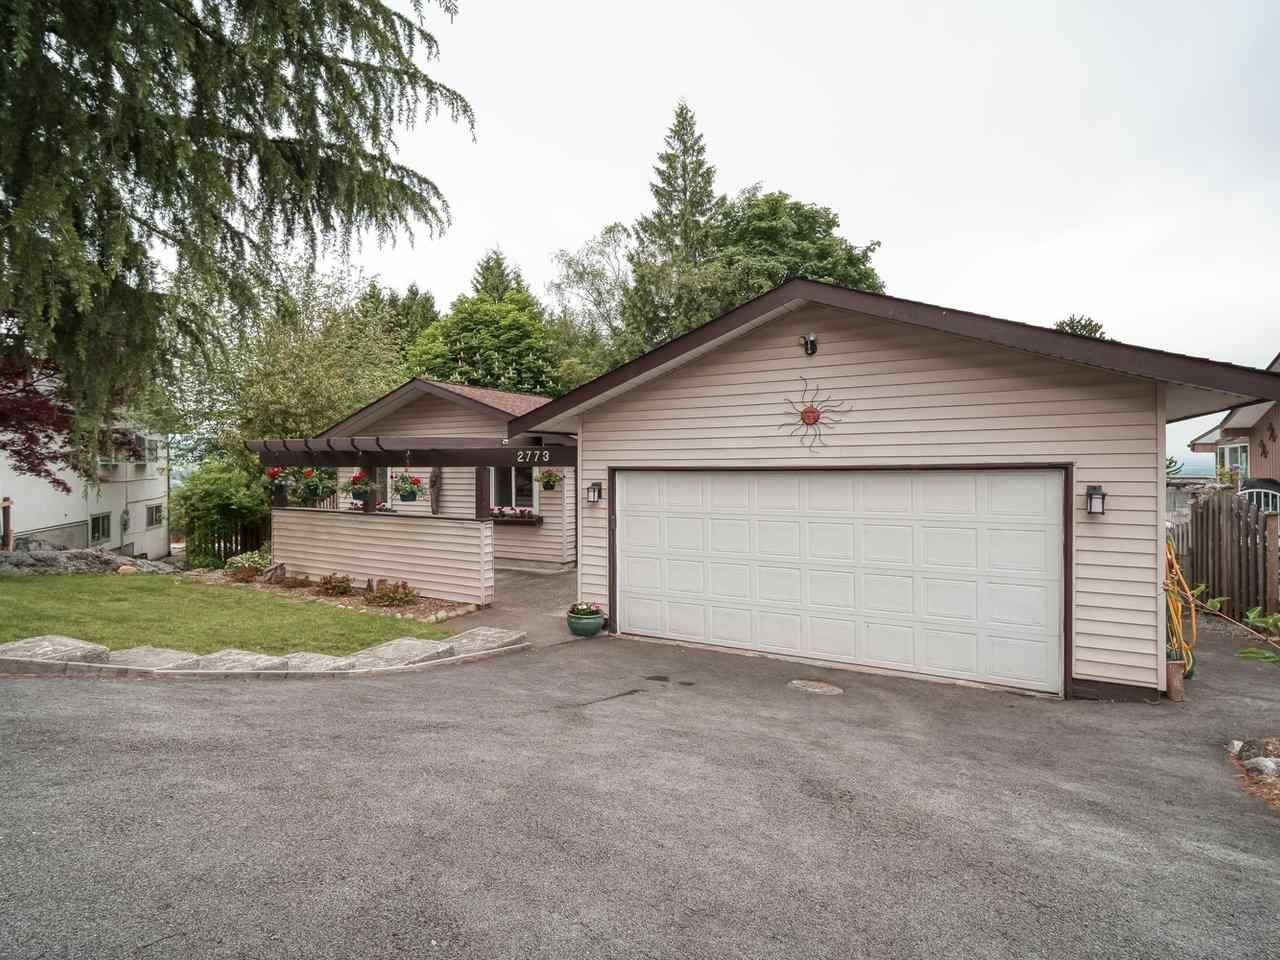 Main Photo: 2773 DAYBREAK Avenue in Coquitlam: Ranch Park House for sale : MLS®# R2457912